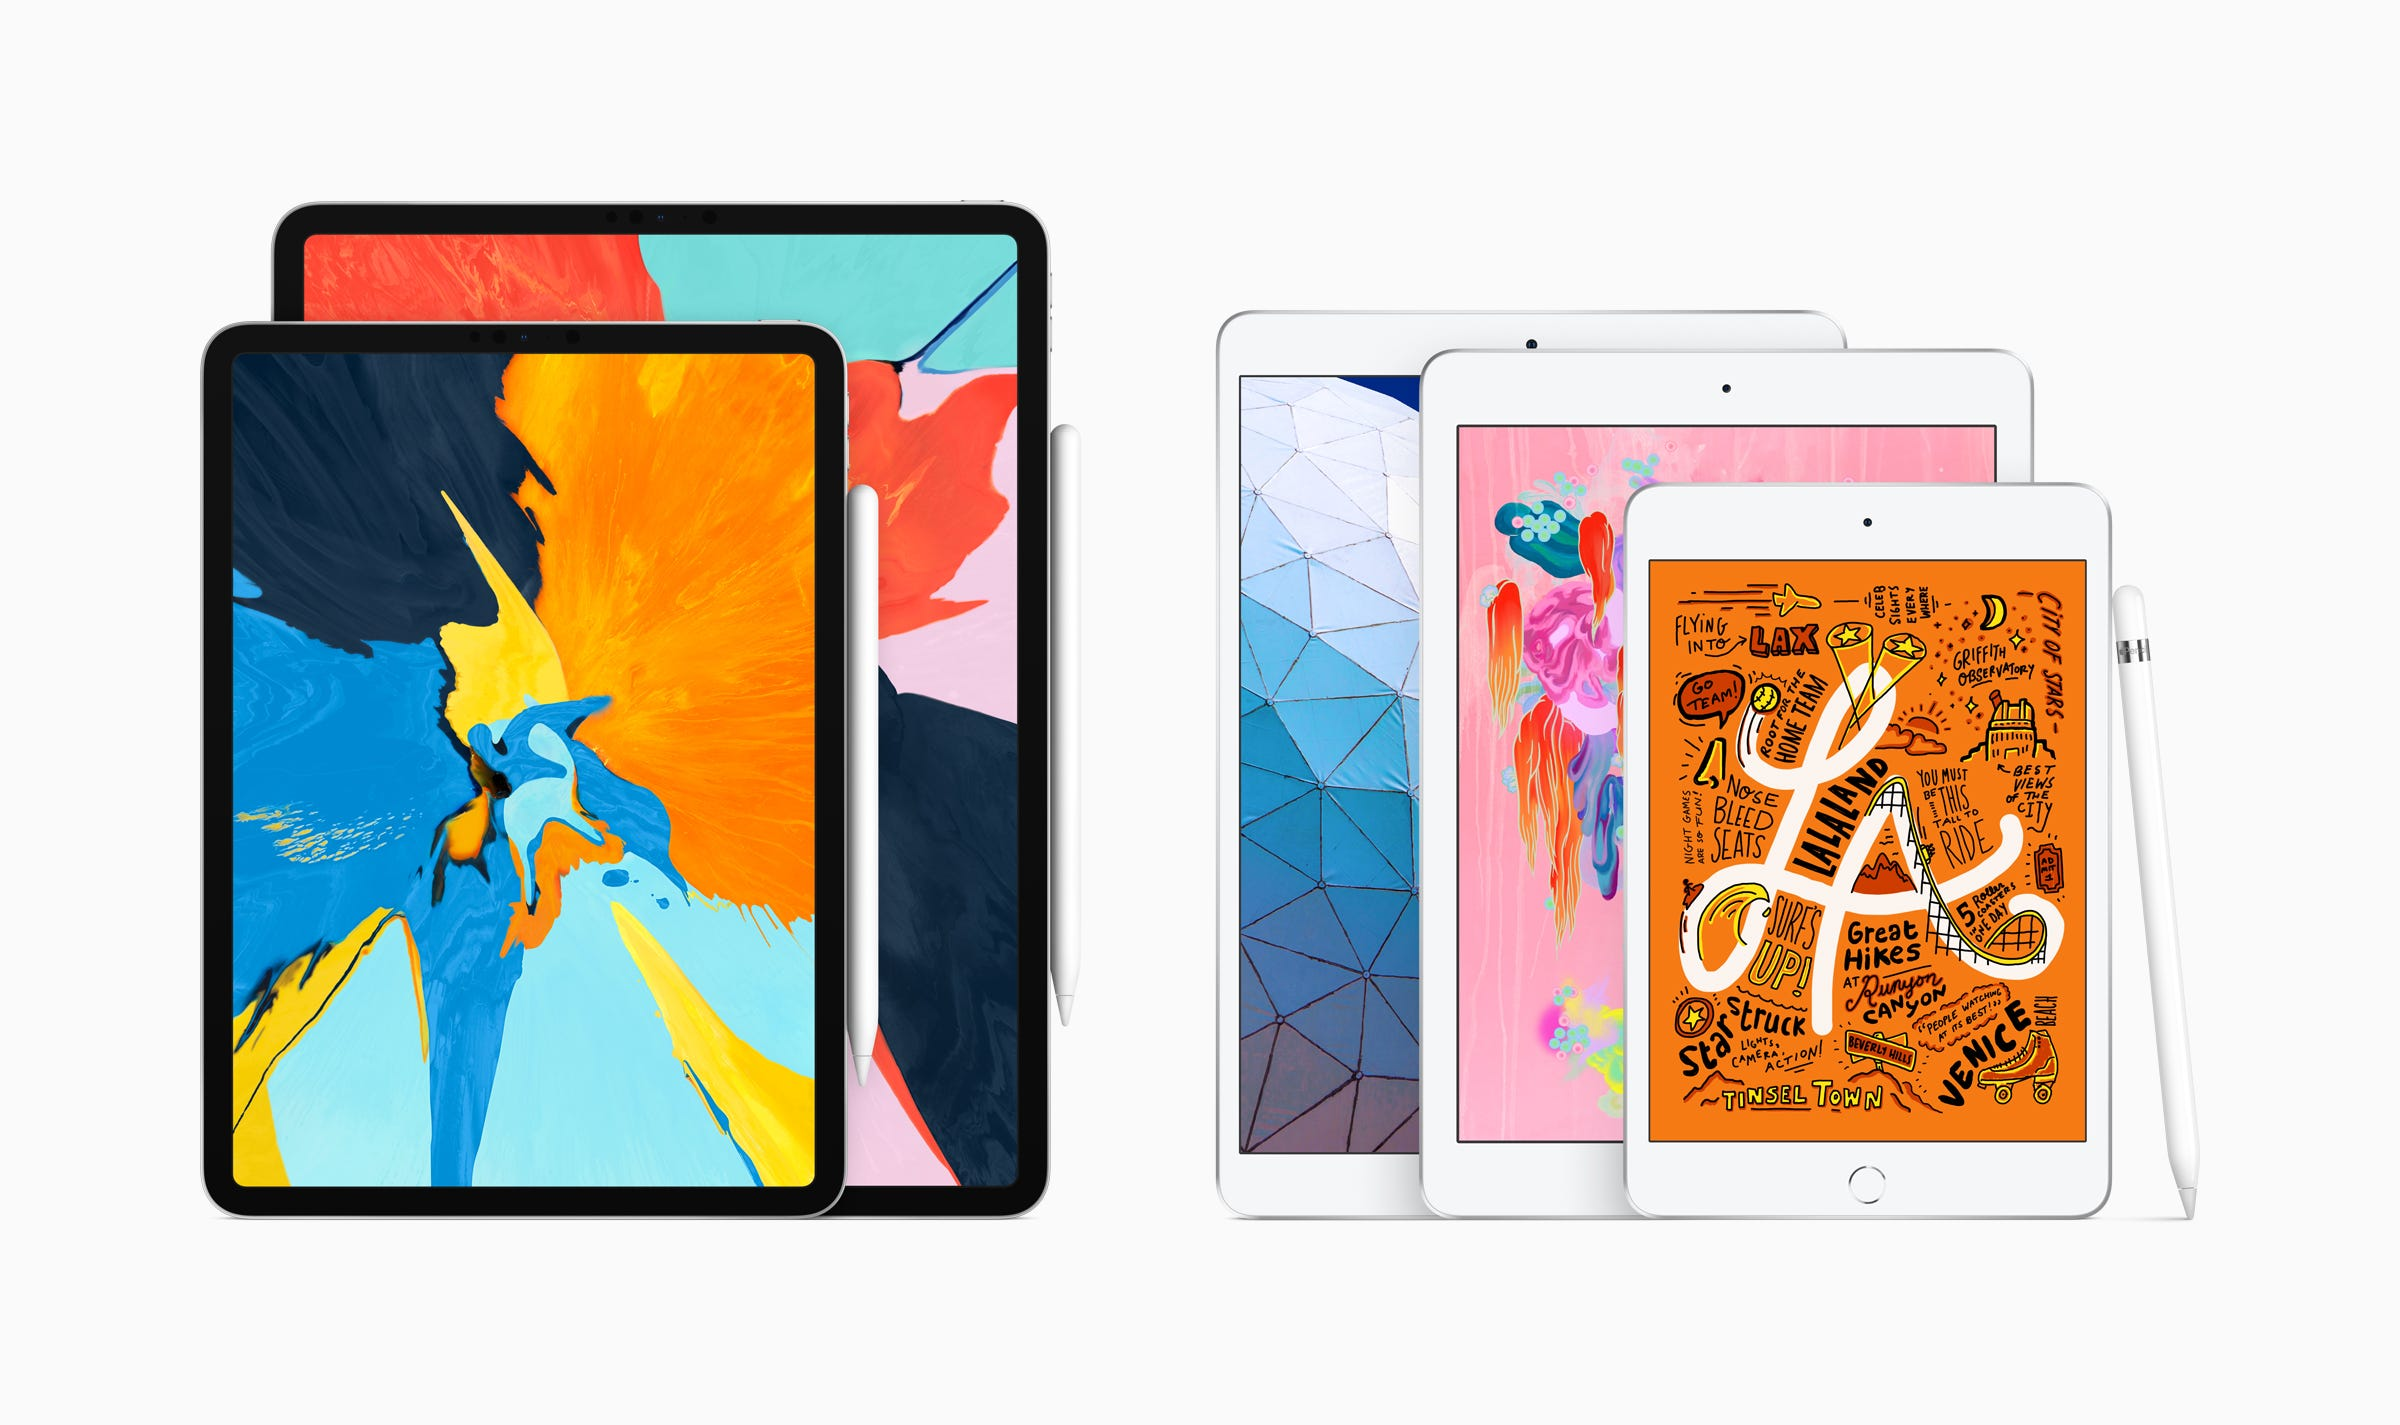 iPad mini review: In an age of larger iPhones, does Apple's small tablet still make sense?